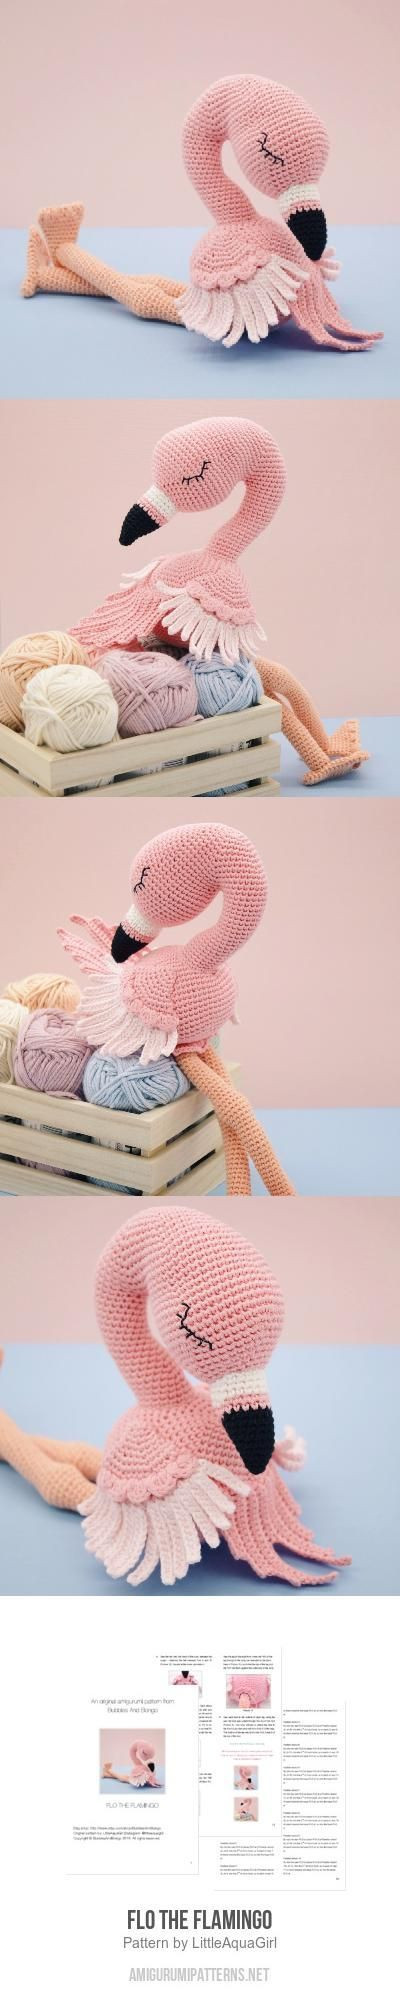 """Flo The Flamingo Amigurumi Pattern More [   """"épinglé par ❃❀CM❁Flo The Flamingo Amigurumi Pattern"""",   """"Crochet Doll Amigurumi Bunny with Tiny Teddy Bear Baby Shower Gift My First Doll"""",   """"This is amazing"""" ] #<br/> # #Flamingos,<br/> # #Crochet #Animals,<br/> # #Crochet #Toys,<br/> # #Crochet #Animal #Patterns,<br/> # #Crochet #Stuffed #Animals,<br/> # #Crochet #Birds,<br/> # #Crochet #Ideas,<br/> # #Amigurumi #Patterns,<br/> # #Flamingo #Pattern<br/>"""